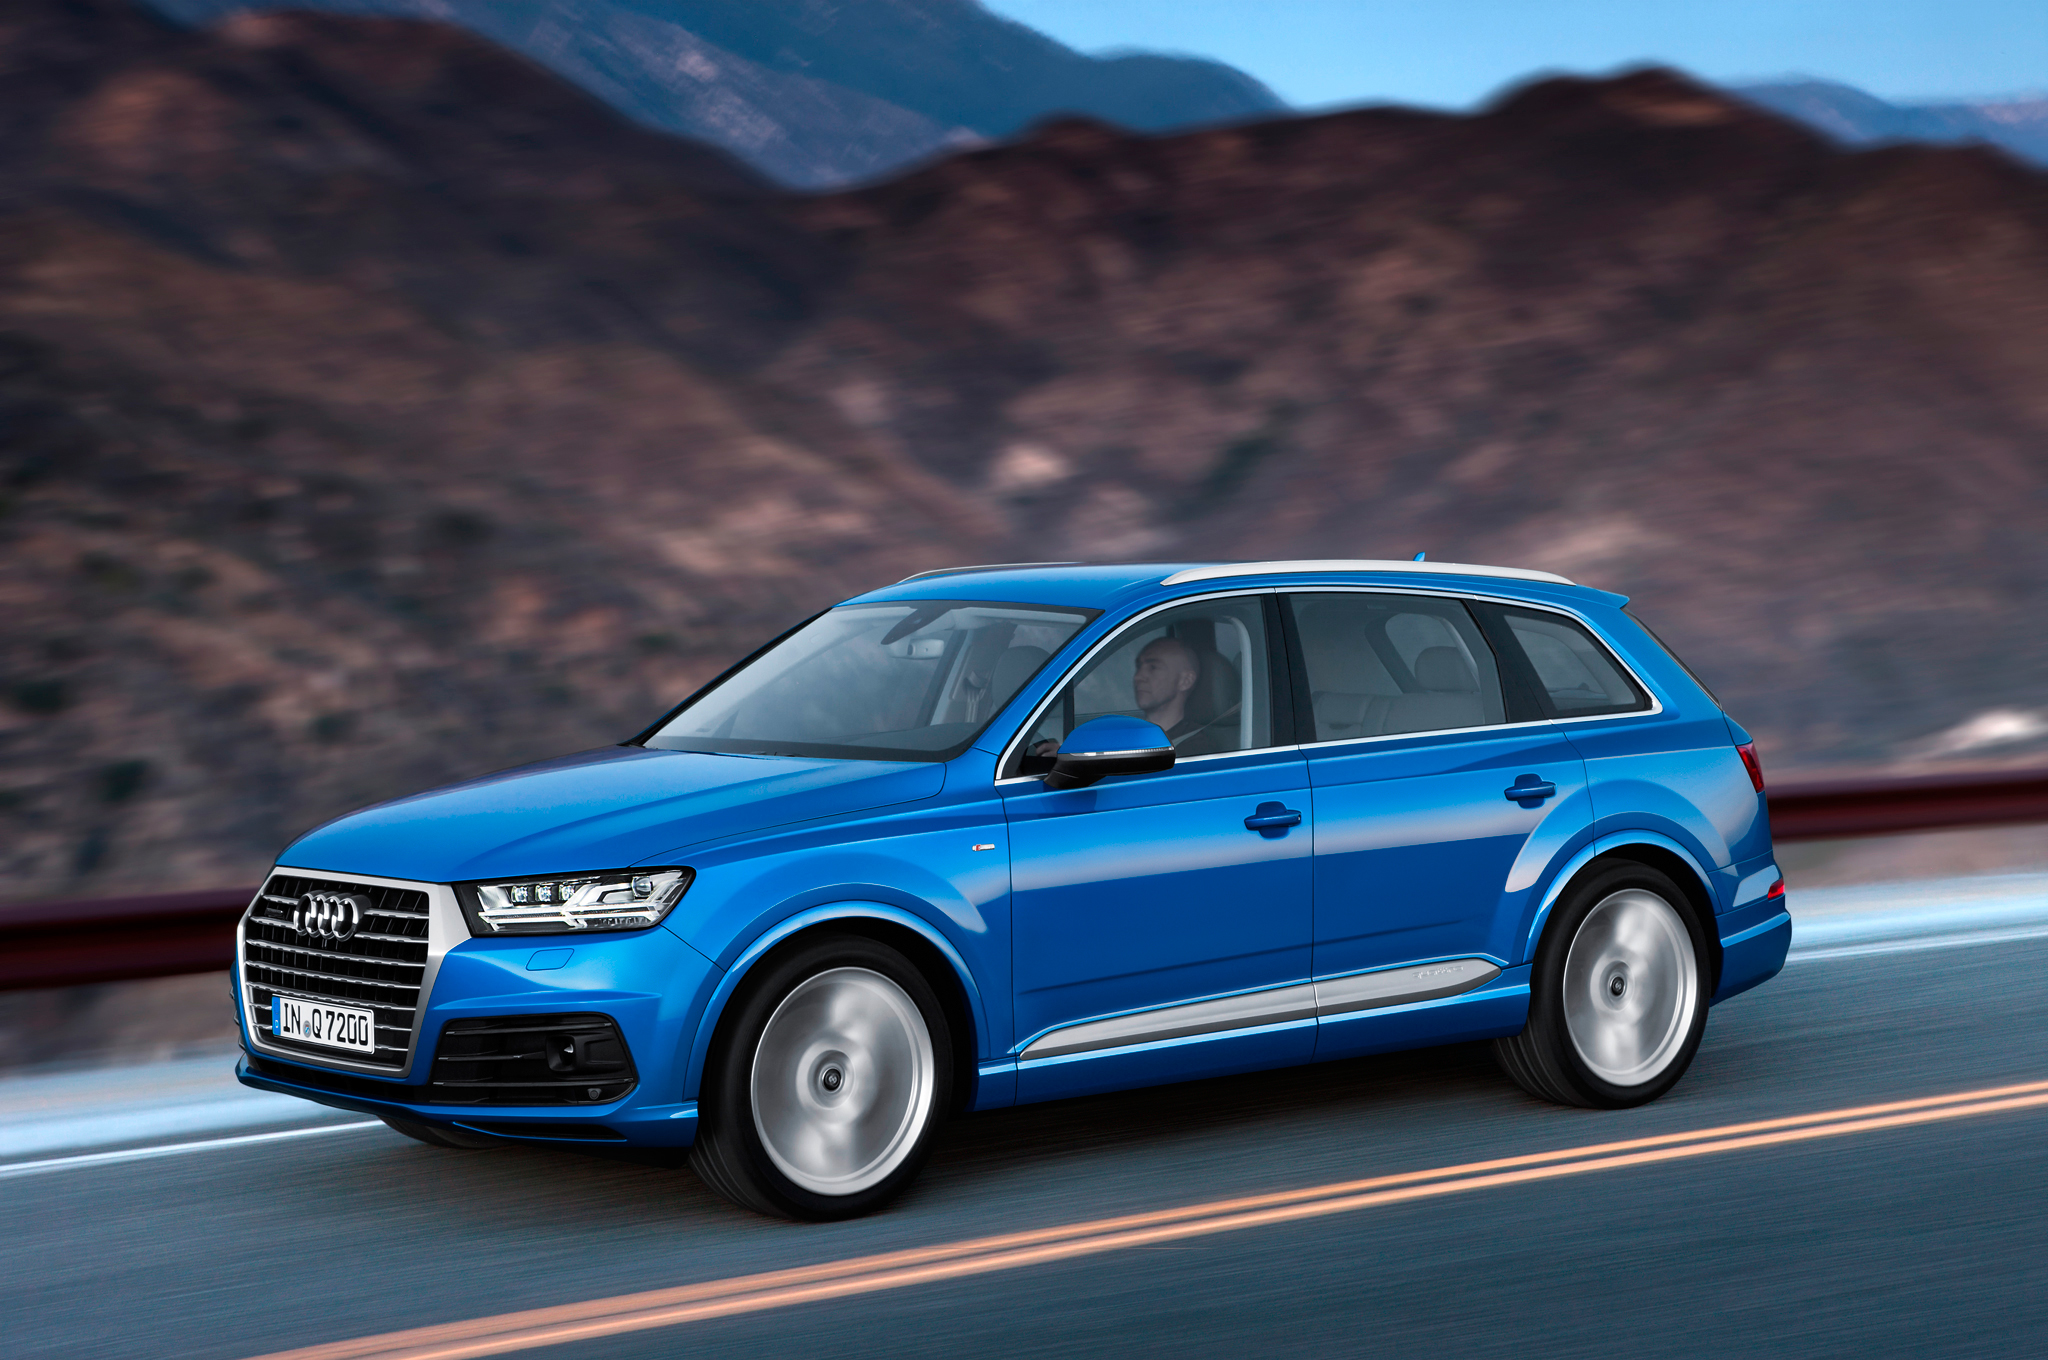 2016 Audi Q7 Performance Test (View 2 of 8)